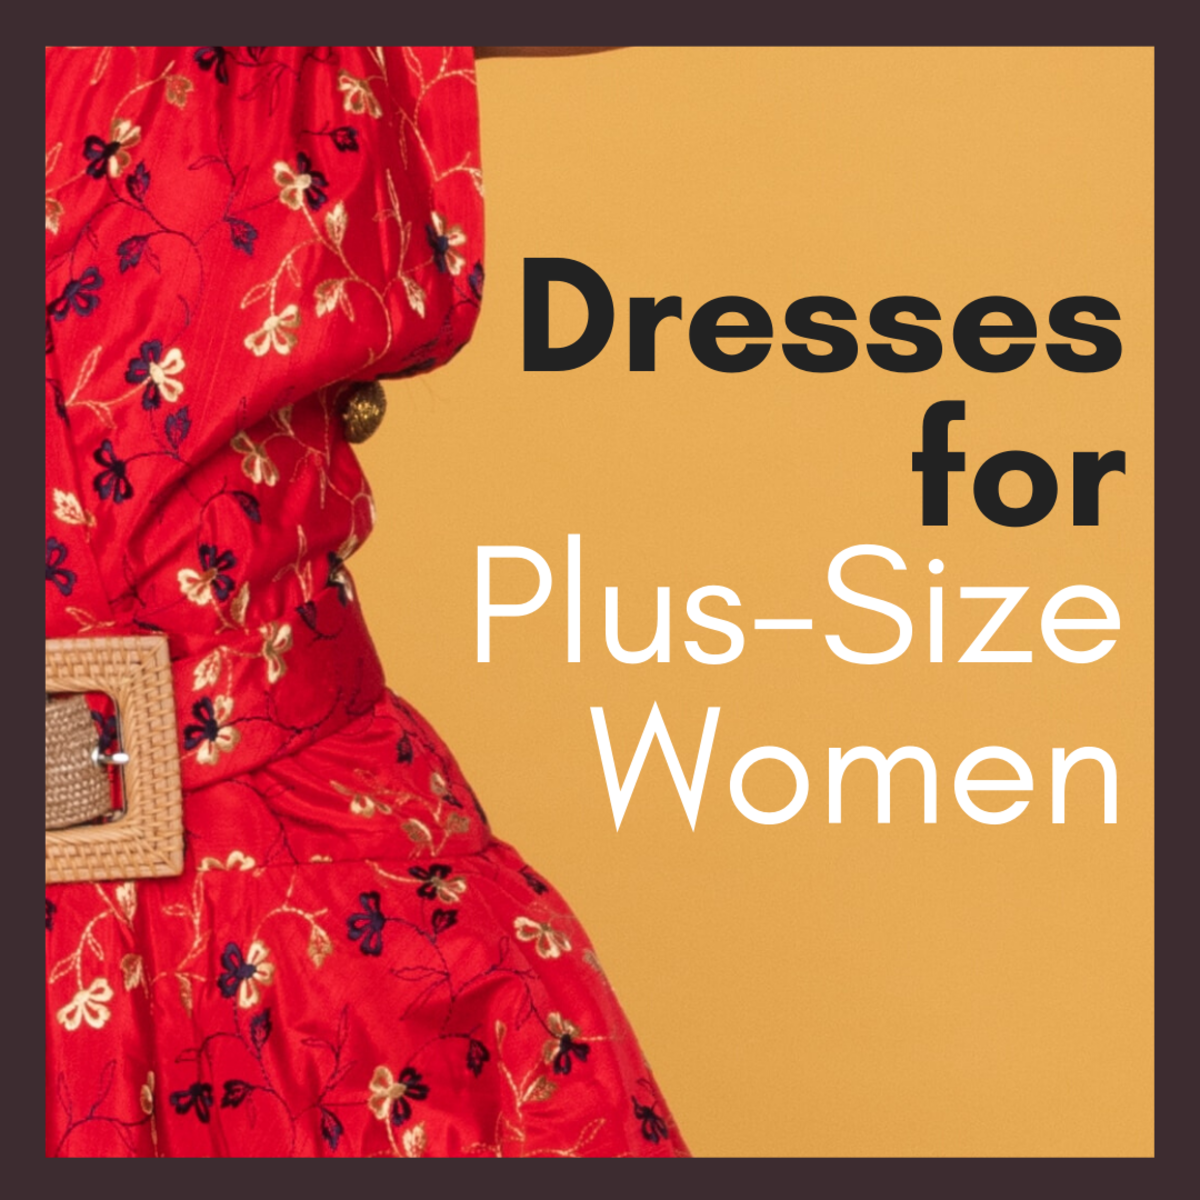 How to Choose Plus-Size Dresses That Flatter